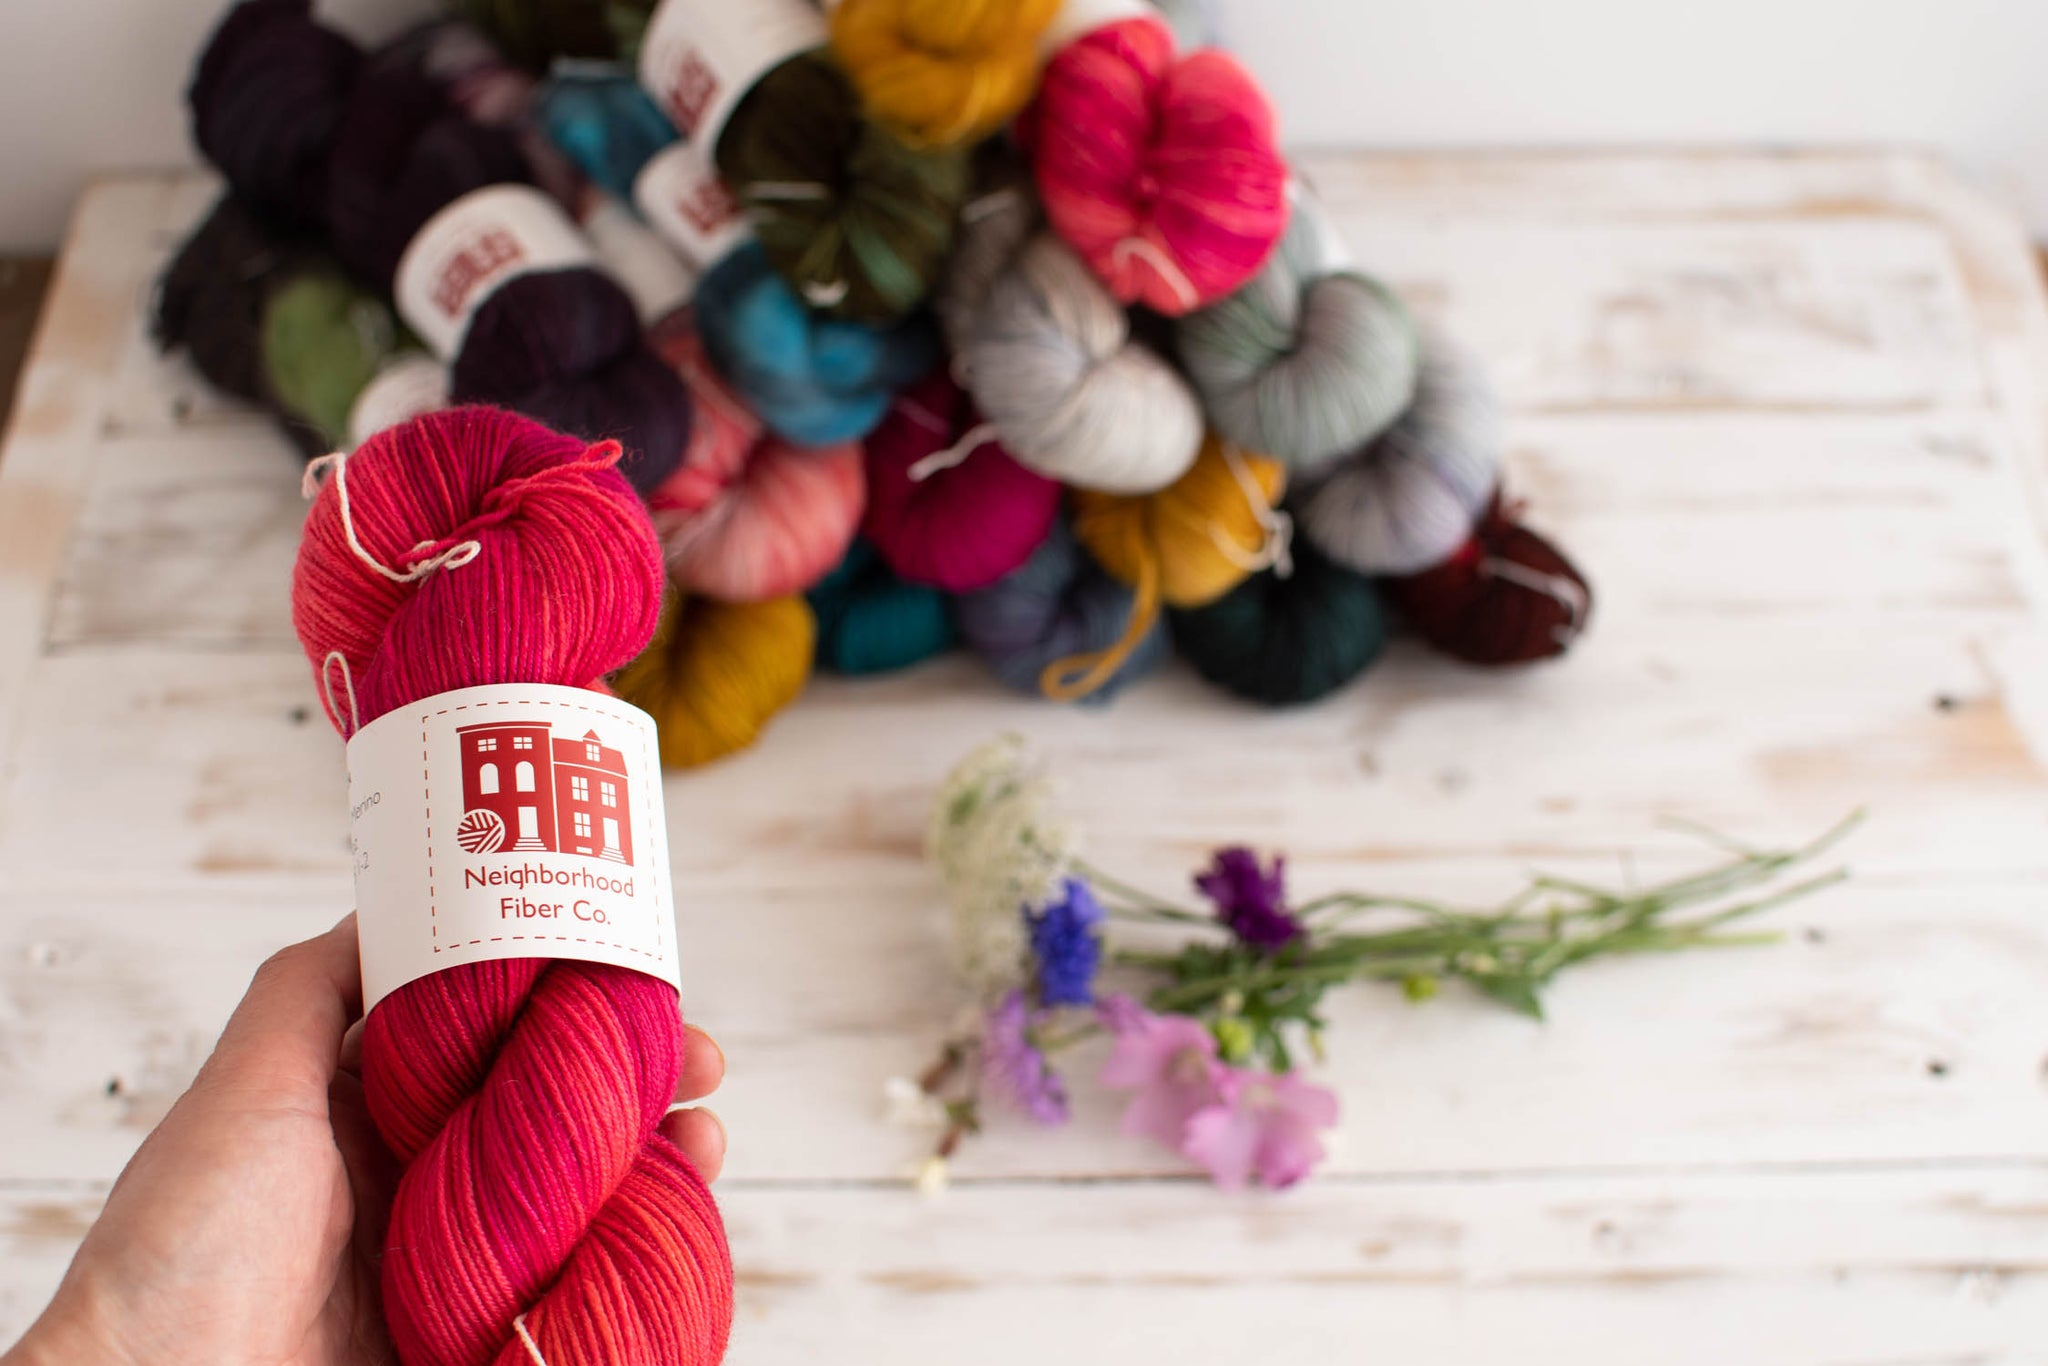 pile of yarn in the background with someone holding a red and pink skein up to the camera in the foreground